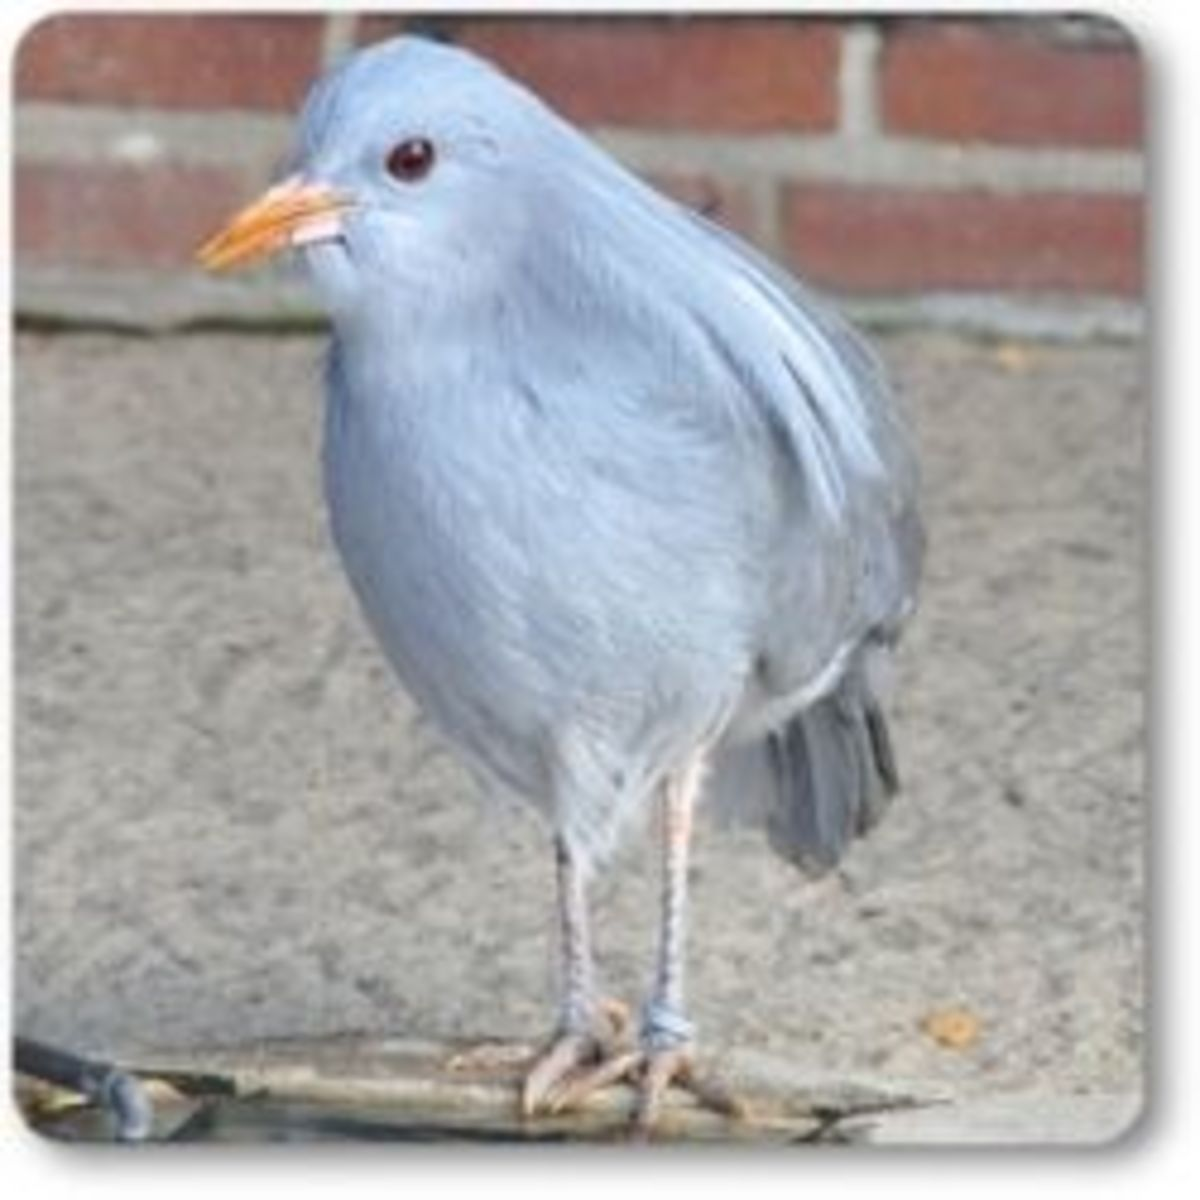 The Kagu  bird.